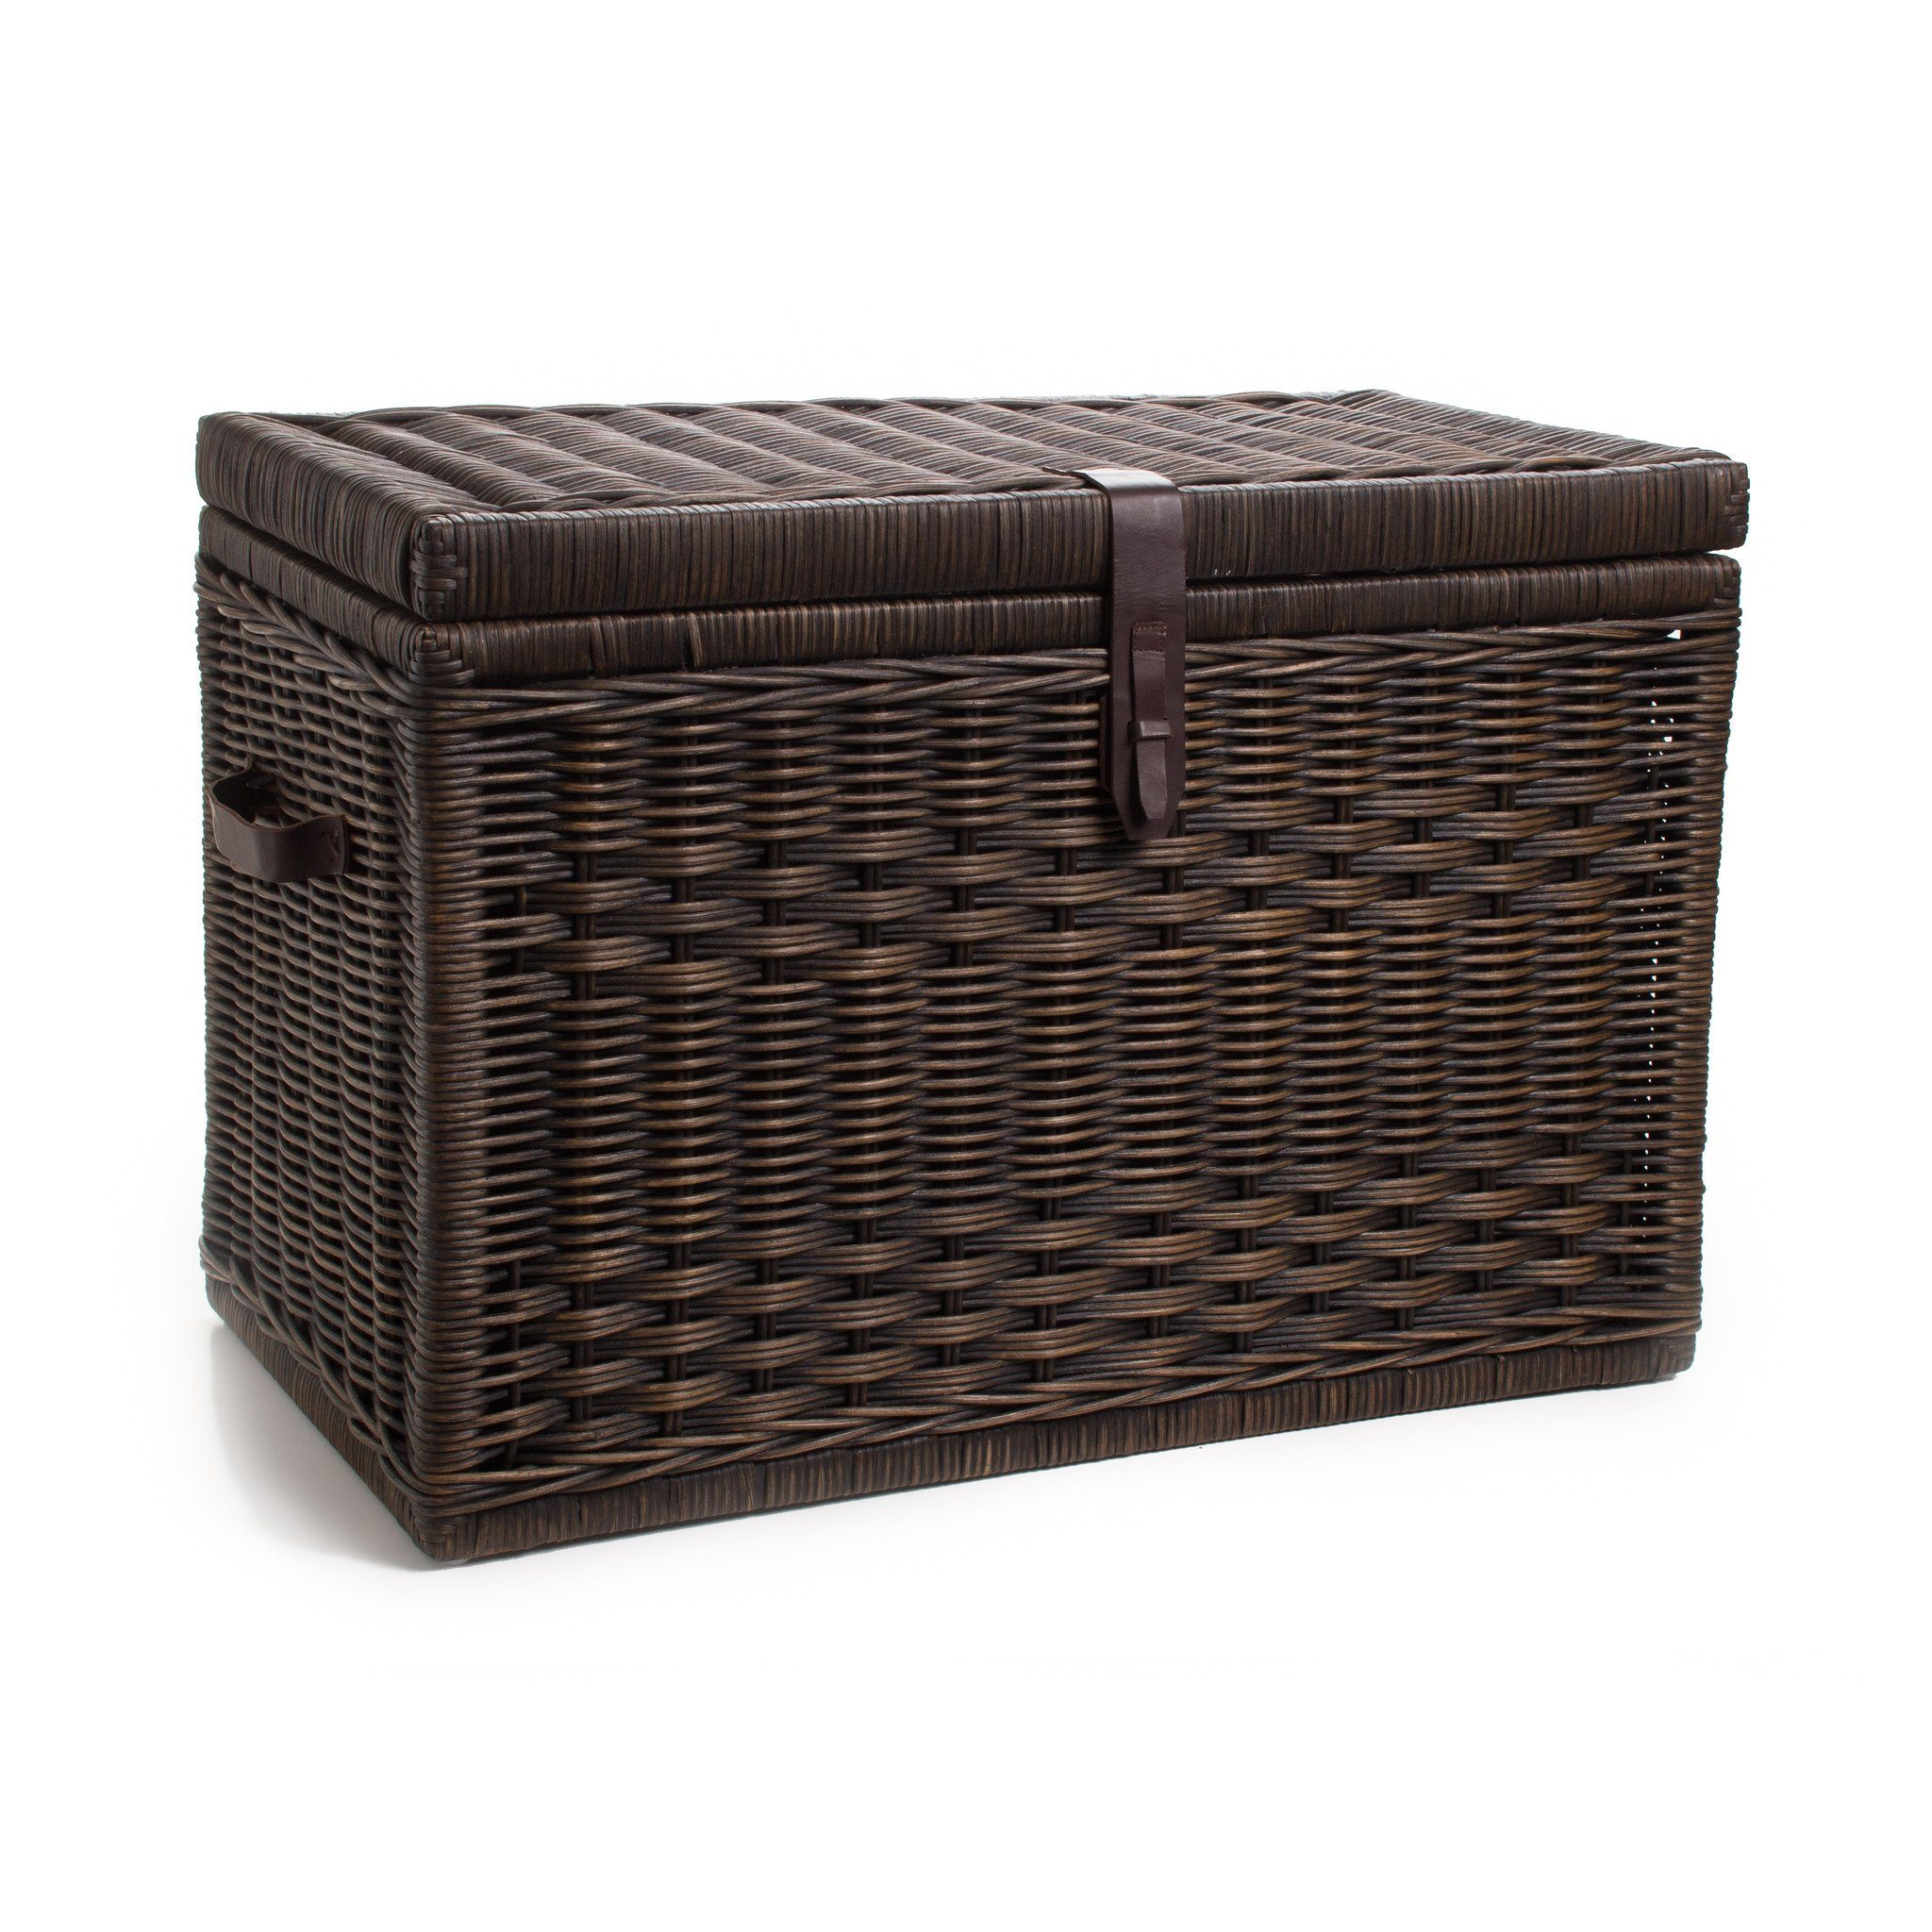 The Basket Lady Wicker Storage Trunk ...